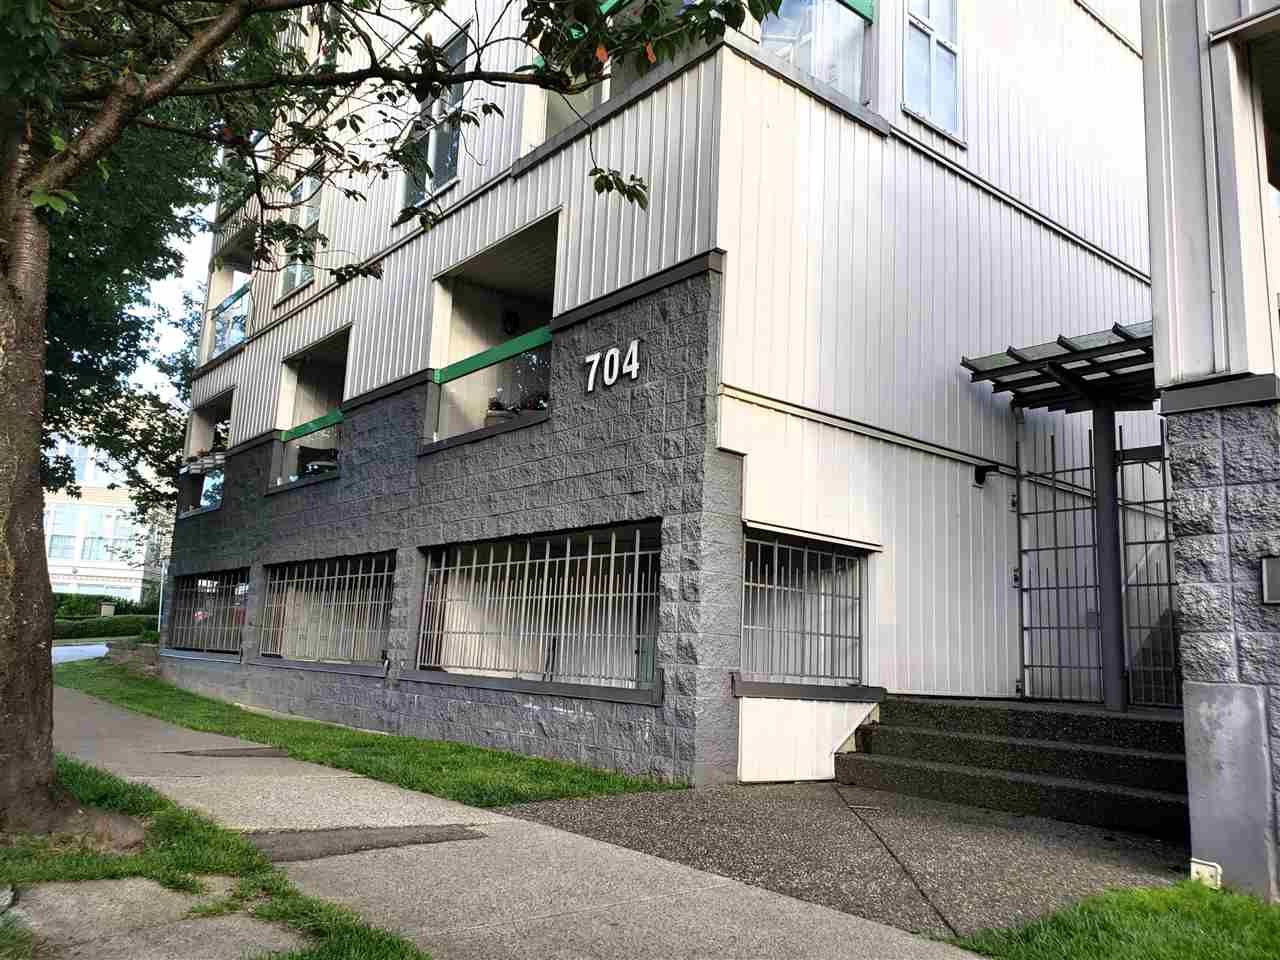 Main Photo: 19 704 W 7TH AVENUE in Vancouver: Fairview VW Condo for sale (Vancouver West)  : MLS®# R2470222